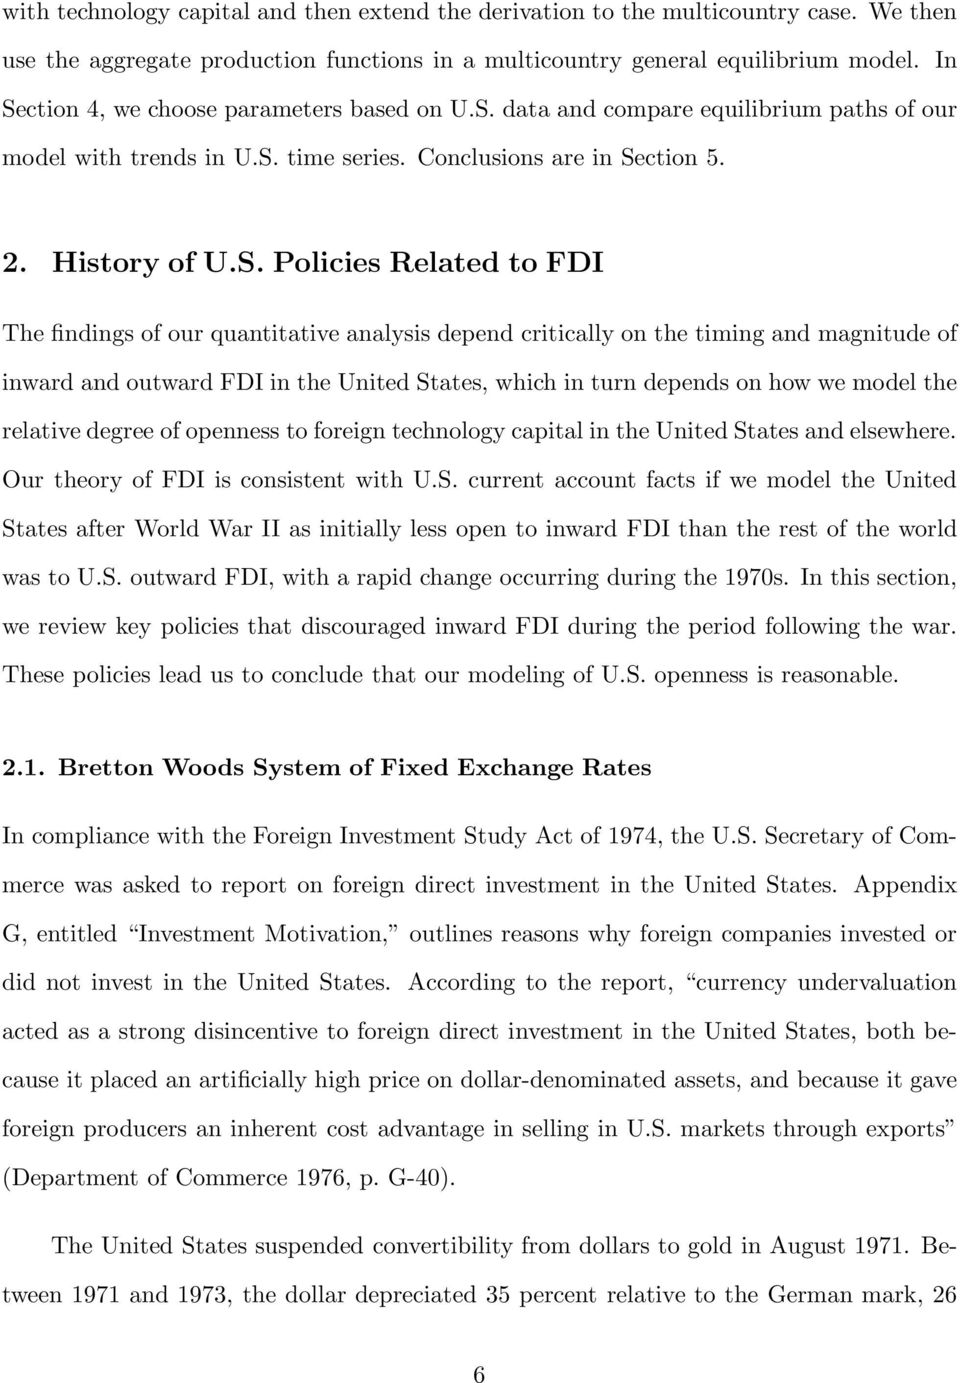 FDI The findings of our quantitative analysis depend critically on the timing and magnitude of inward and outward FDI in the United States, which in turn depends on how we model the relative degree